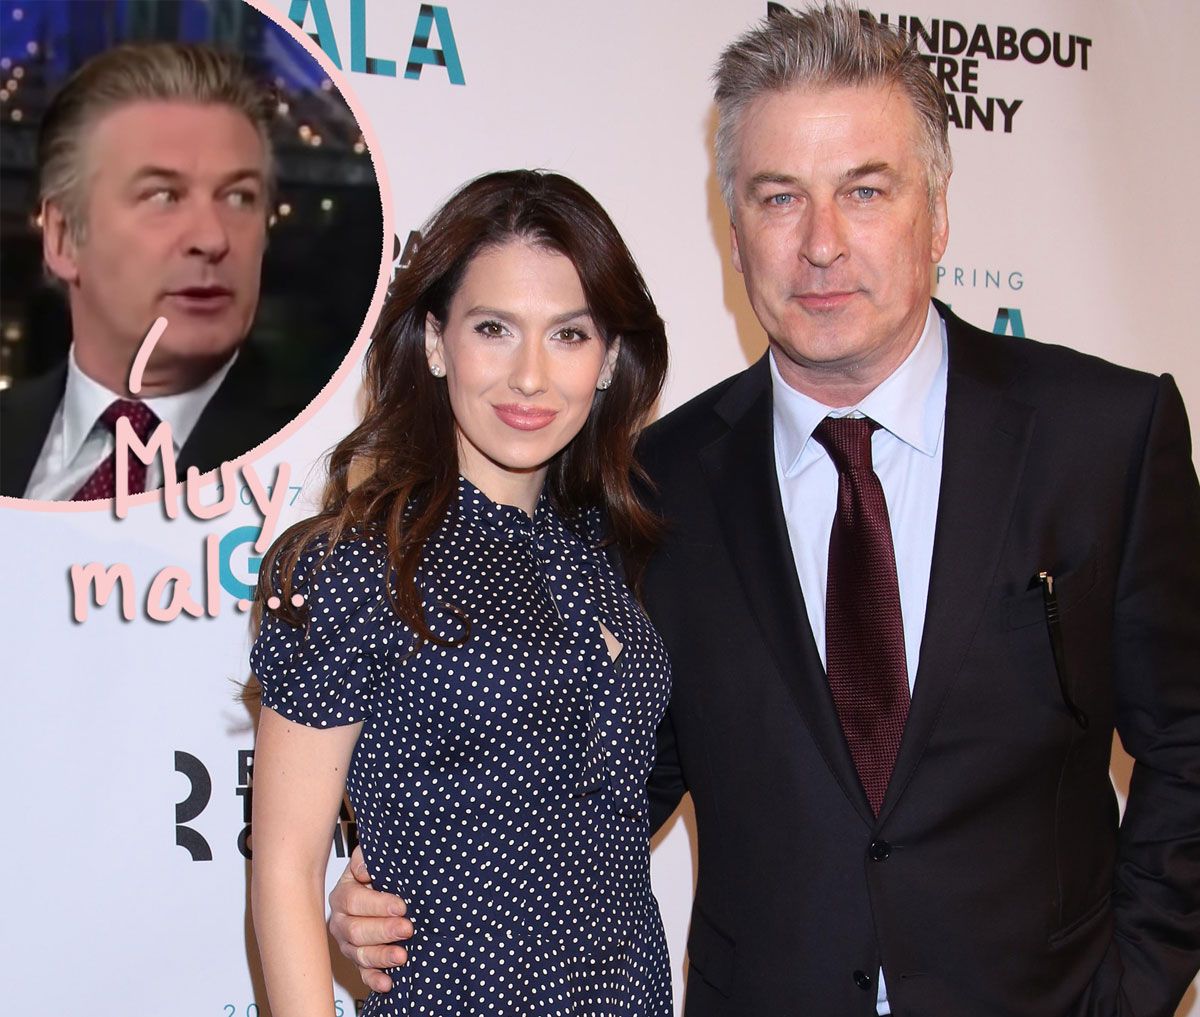 Alec Baldwin Impersonates Hilaria's Allegedly Fake 'Accent' & Says She's 'From Spain' In Resurfaced 2013 Interview Clip!